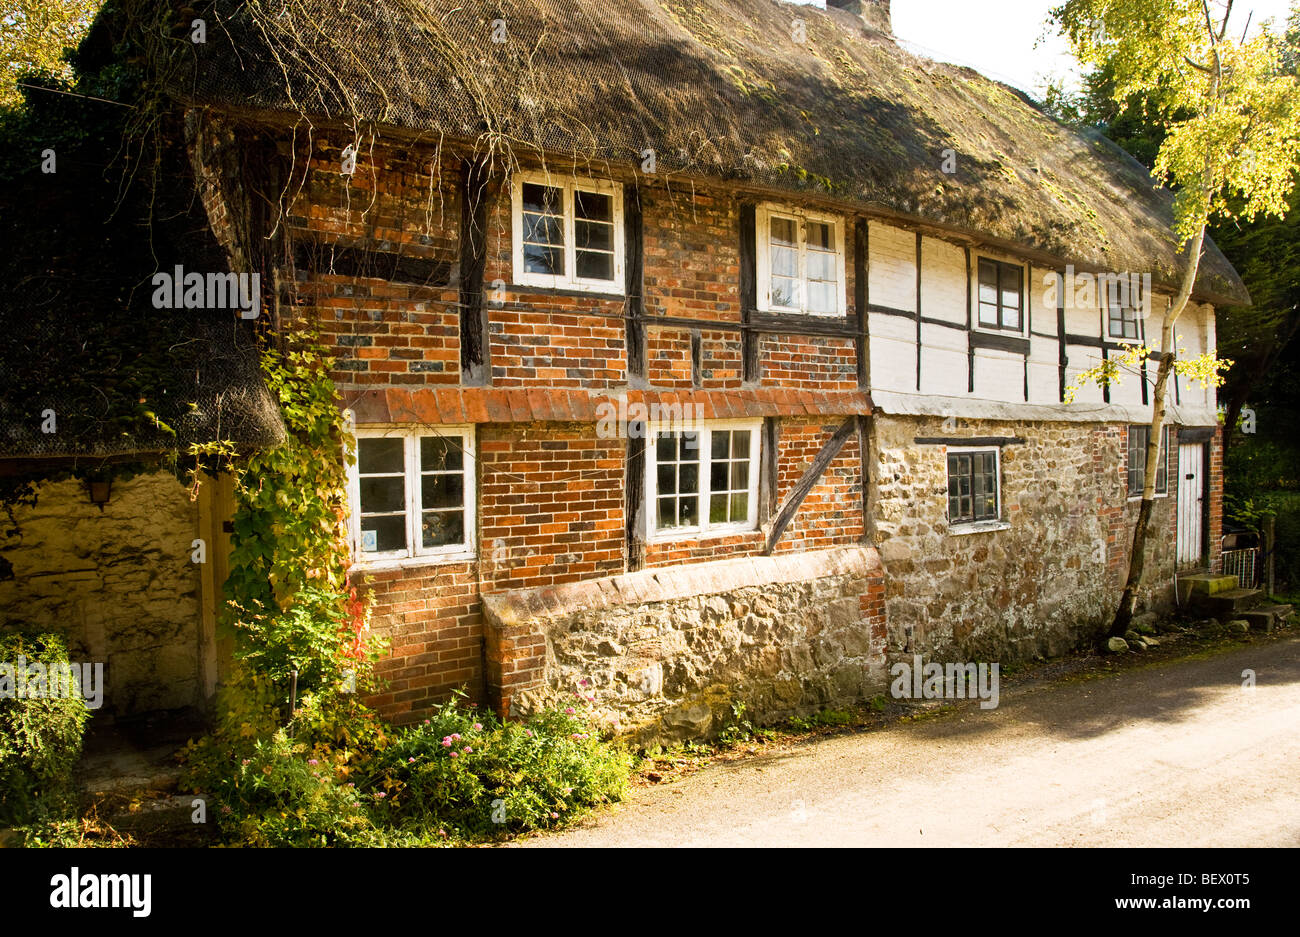 Typical English timber framed thatched cottage in Ogbourne St.Andrew a country village in Wiltshire, England, UK - Stock Image